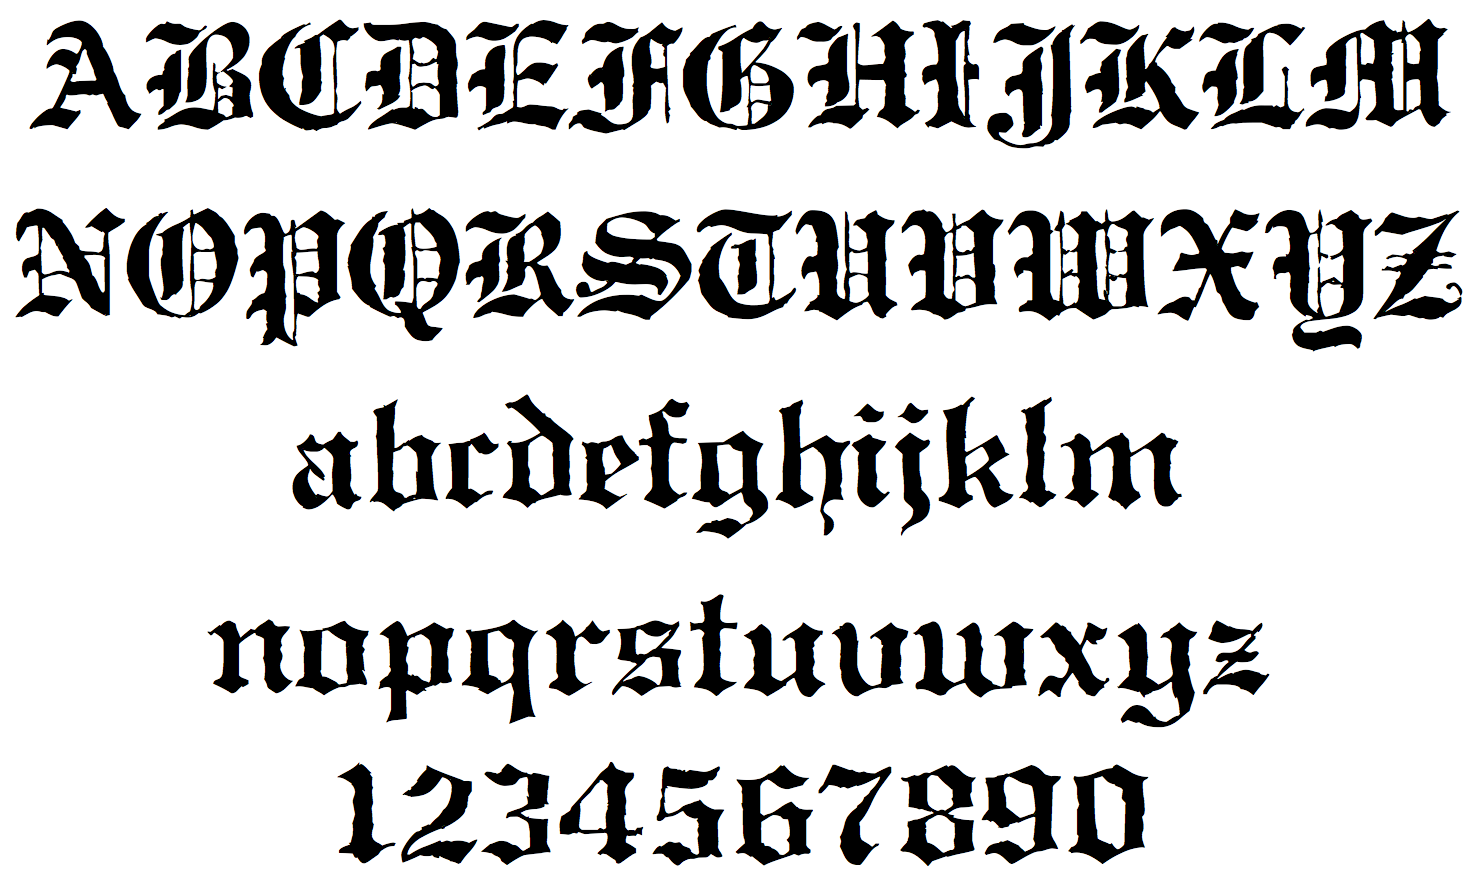 Gothic Calligraphy Font Alphabet Letters